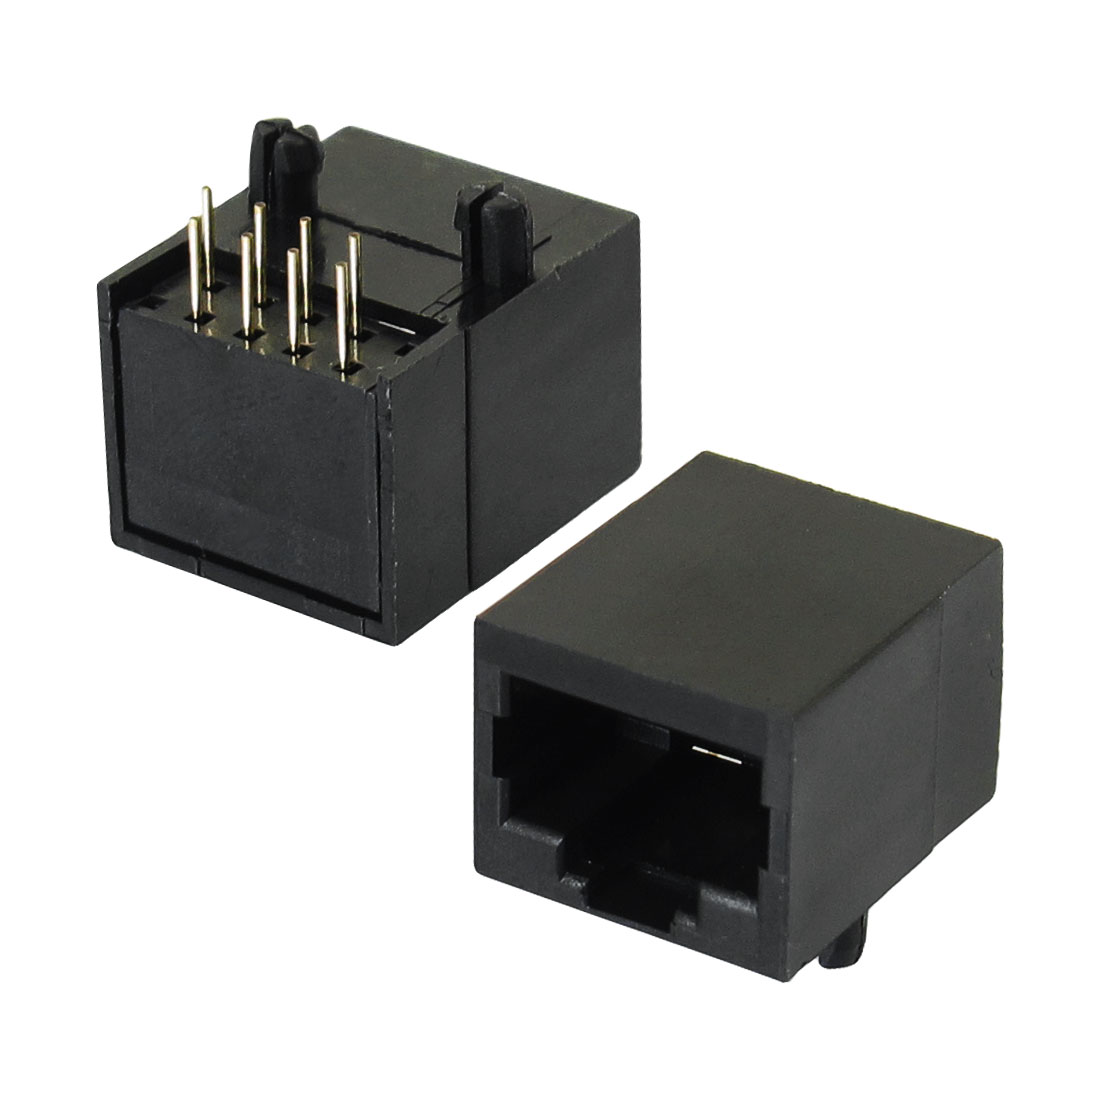 2 Pcs 8-Pin 90 Degree RJ45 Socket Network PCB Jacks Connector Gold Tone Black